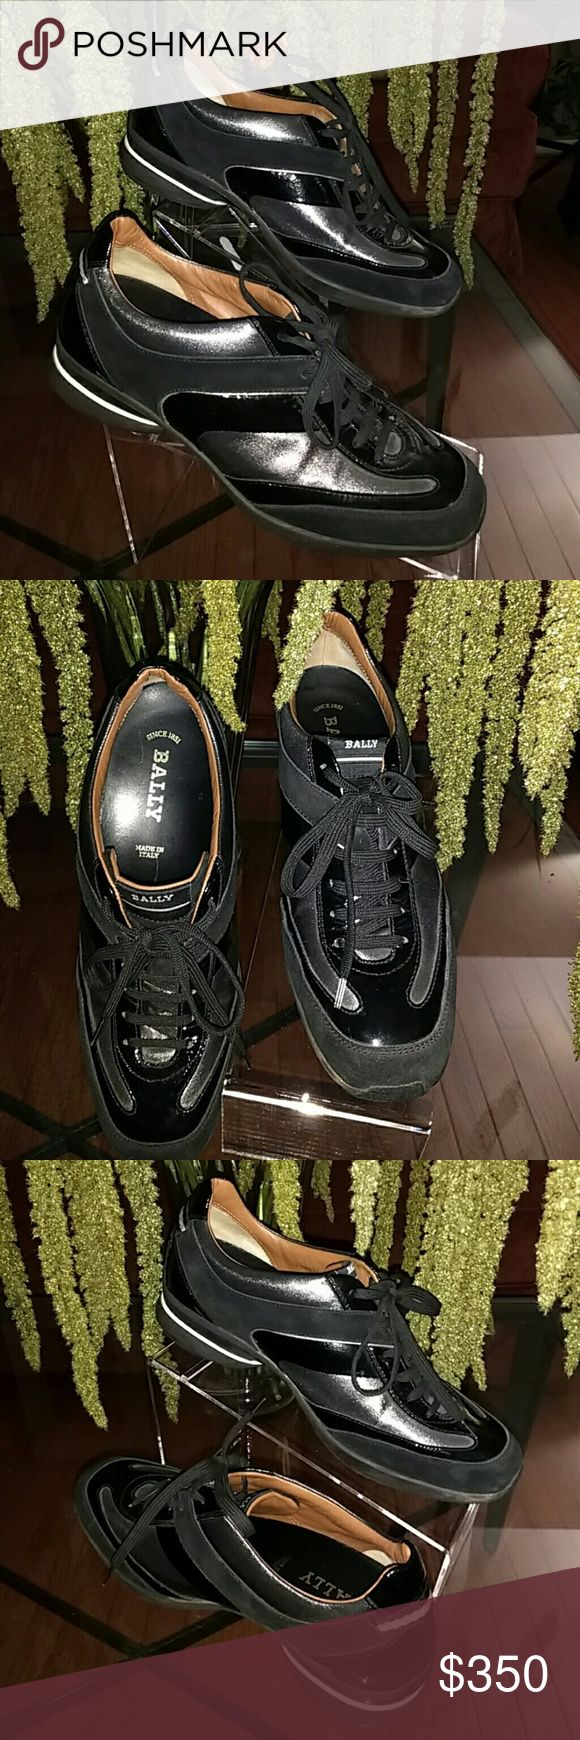 Bally Women's Patent Leather/Suede Trainer Lux Sportswear. Perfect for everyday wear. Signature rubber sole with Bally. Bally strip on back of shoe. Supreme comfort. Excellent condition, like new, no flaws or scuffs. Bally Shoes Athletic Shoes